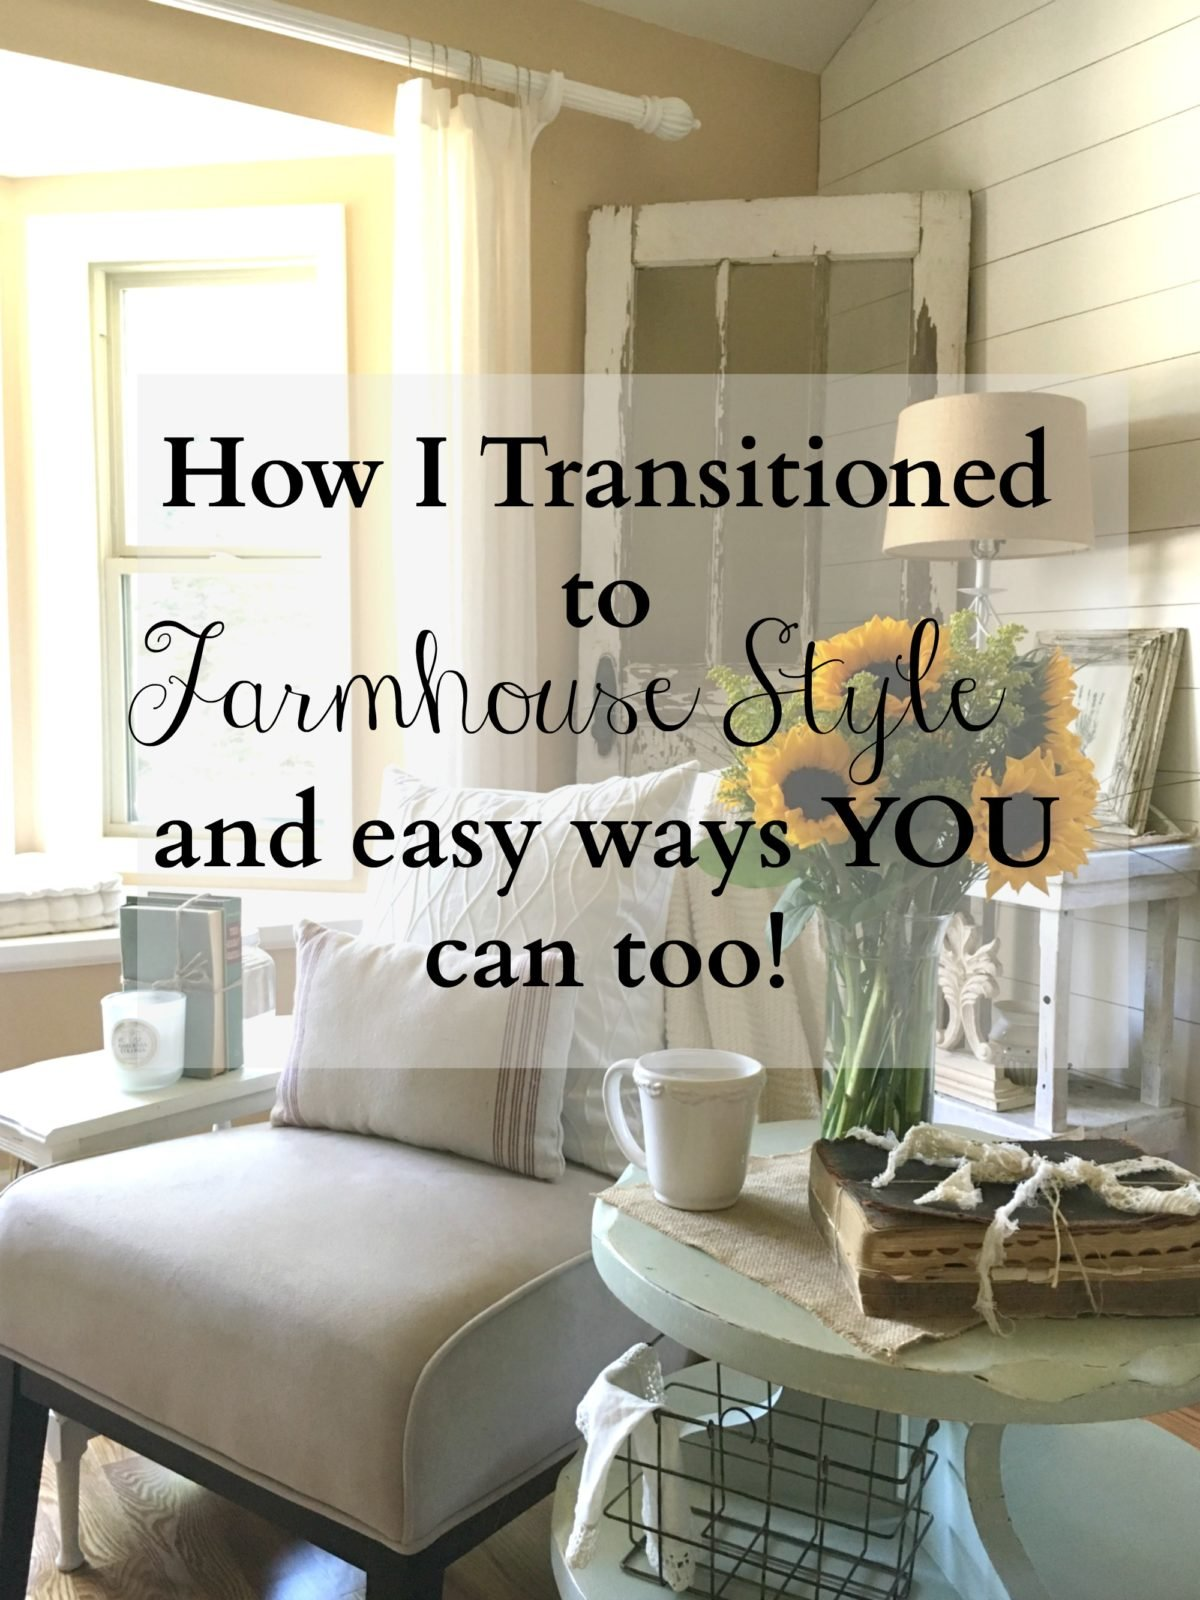 How I Transitioned to Farmhouse Style - Sarah Joy